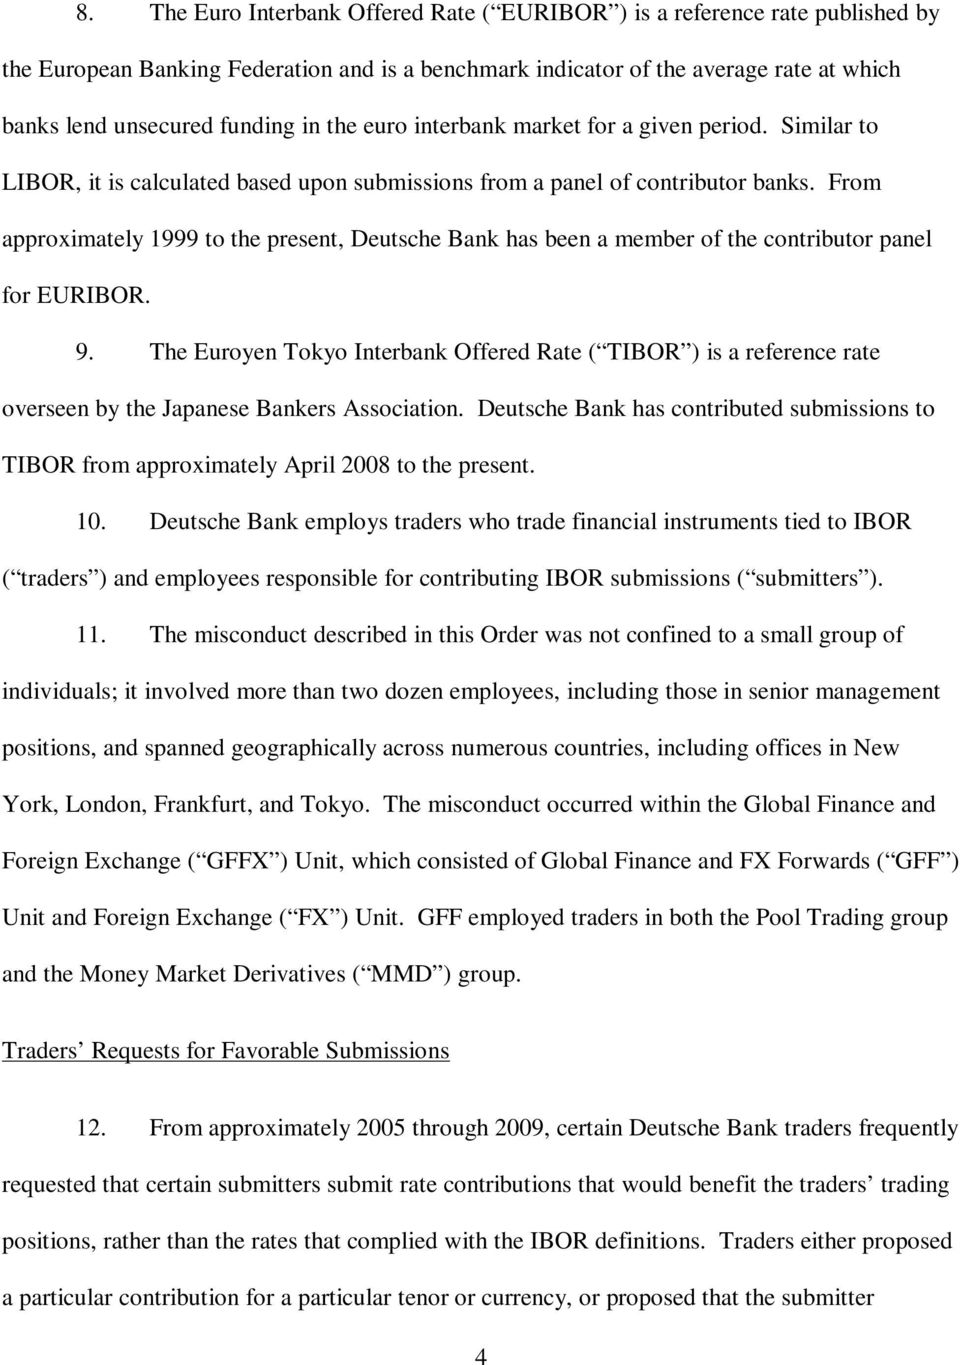 From approximately 1999 to the present, Deutsche Bank has been a member of the contributor panel for EURIBOR. 9.